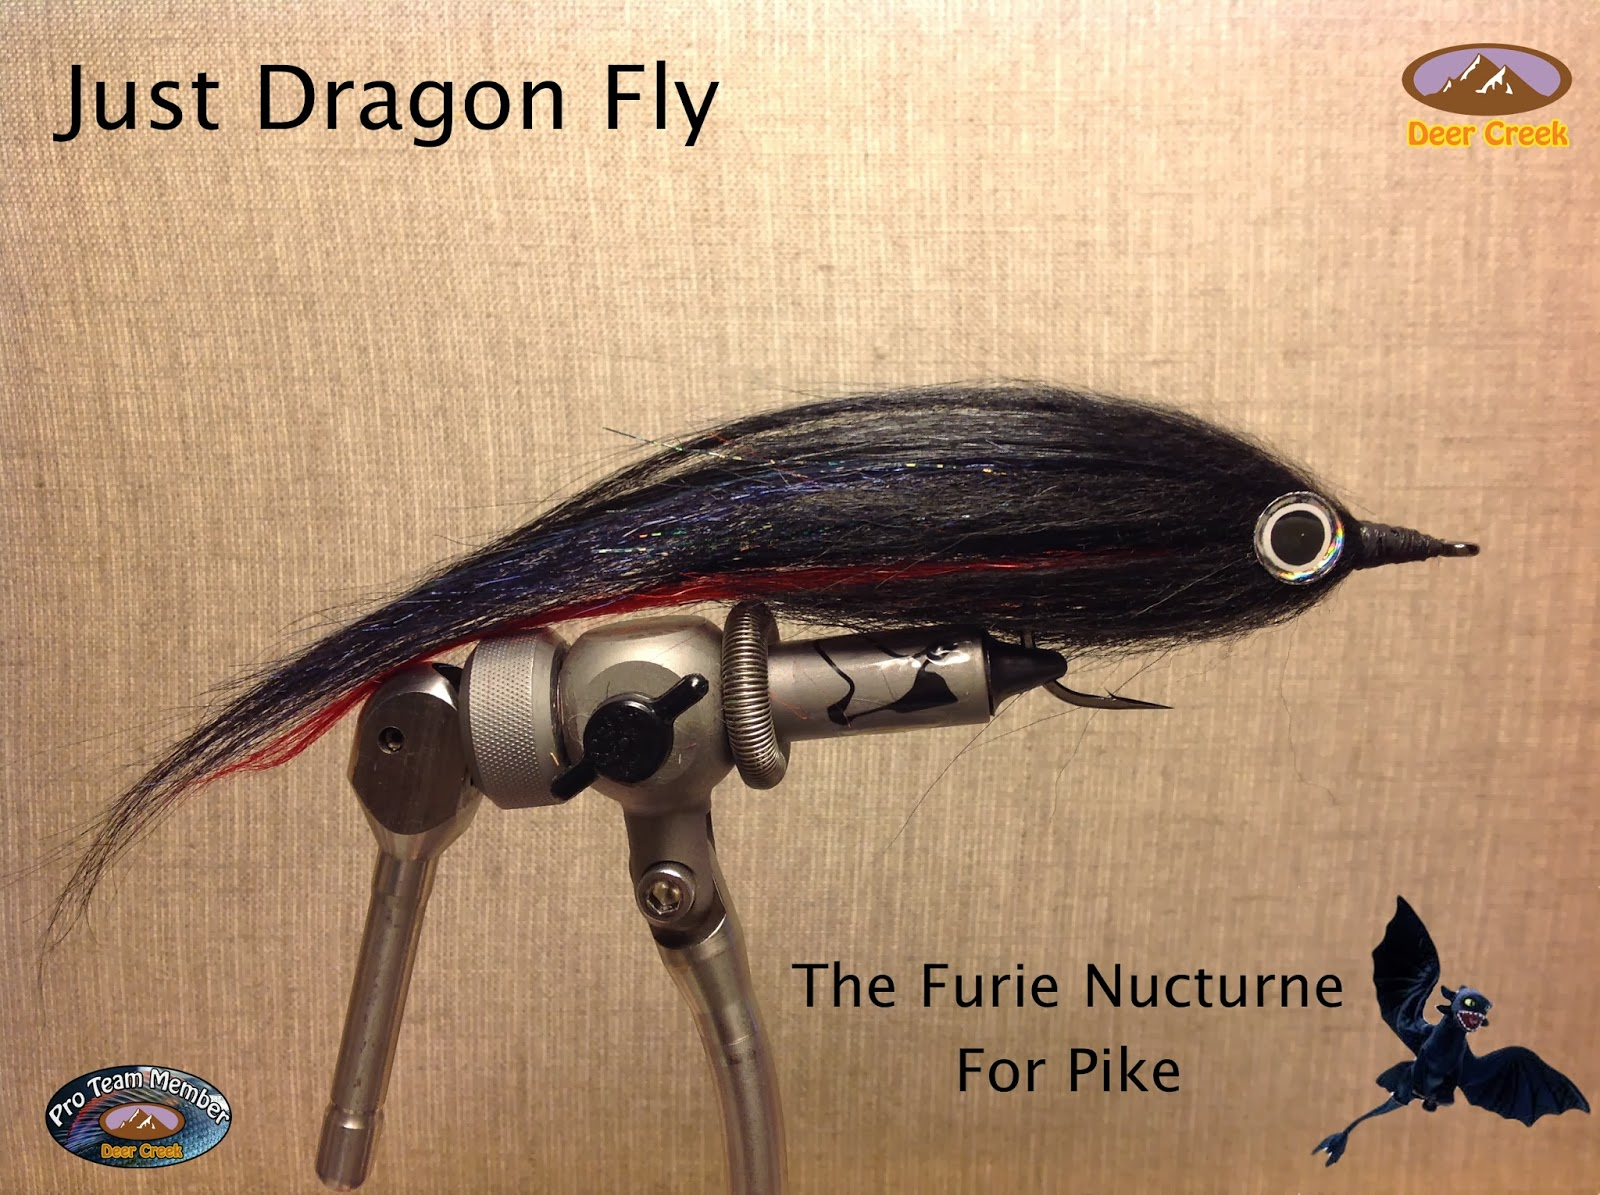 Just dragon fly xavier the furie nocturne for pike - Furie nocturne dragon ...